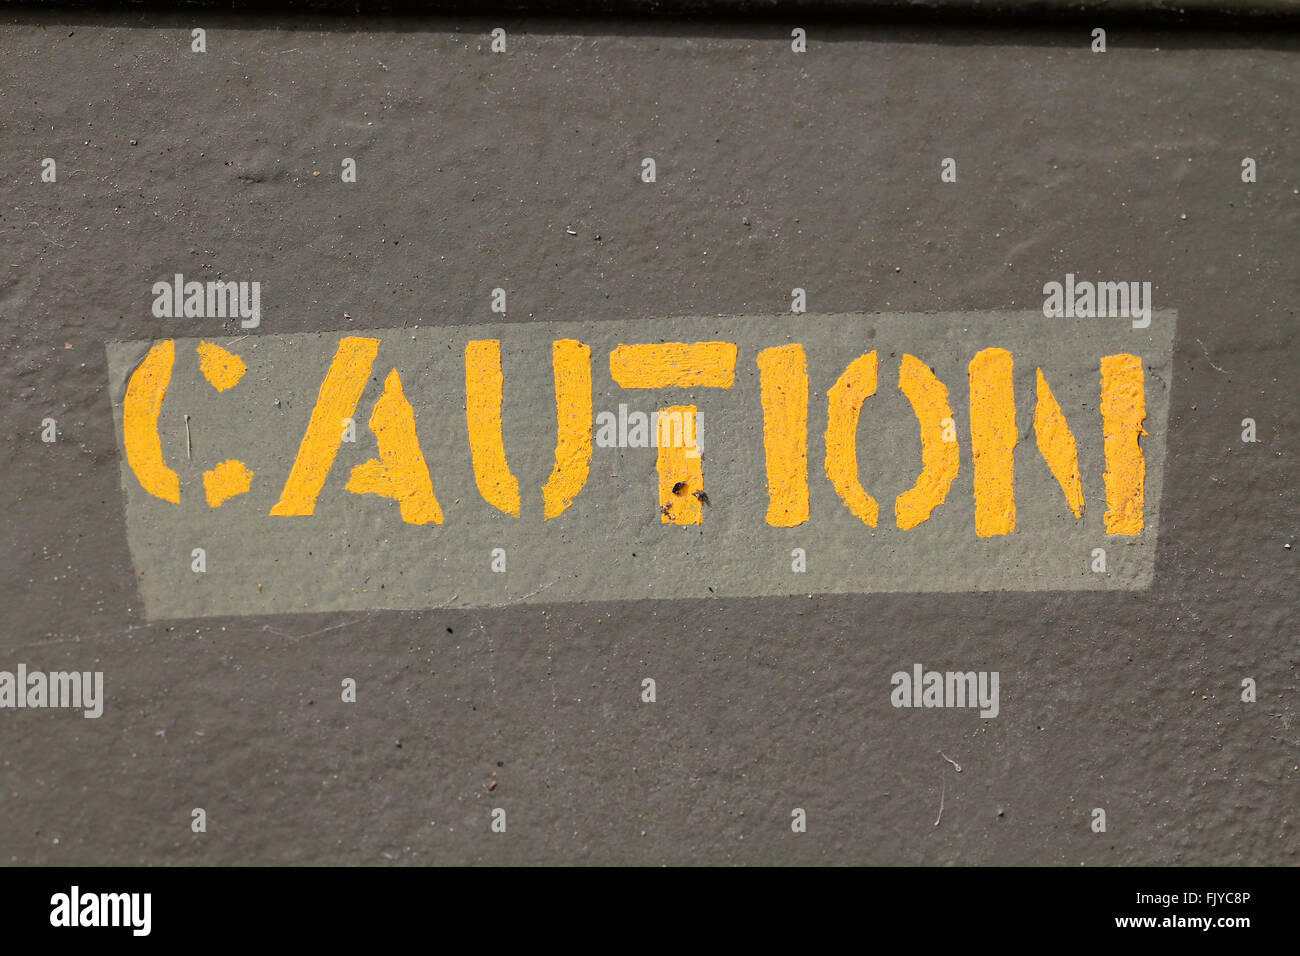 Caution paint - Stock Image